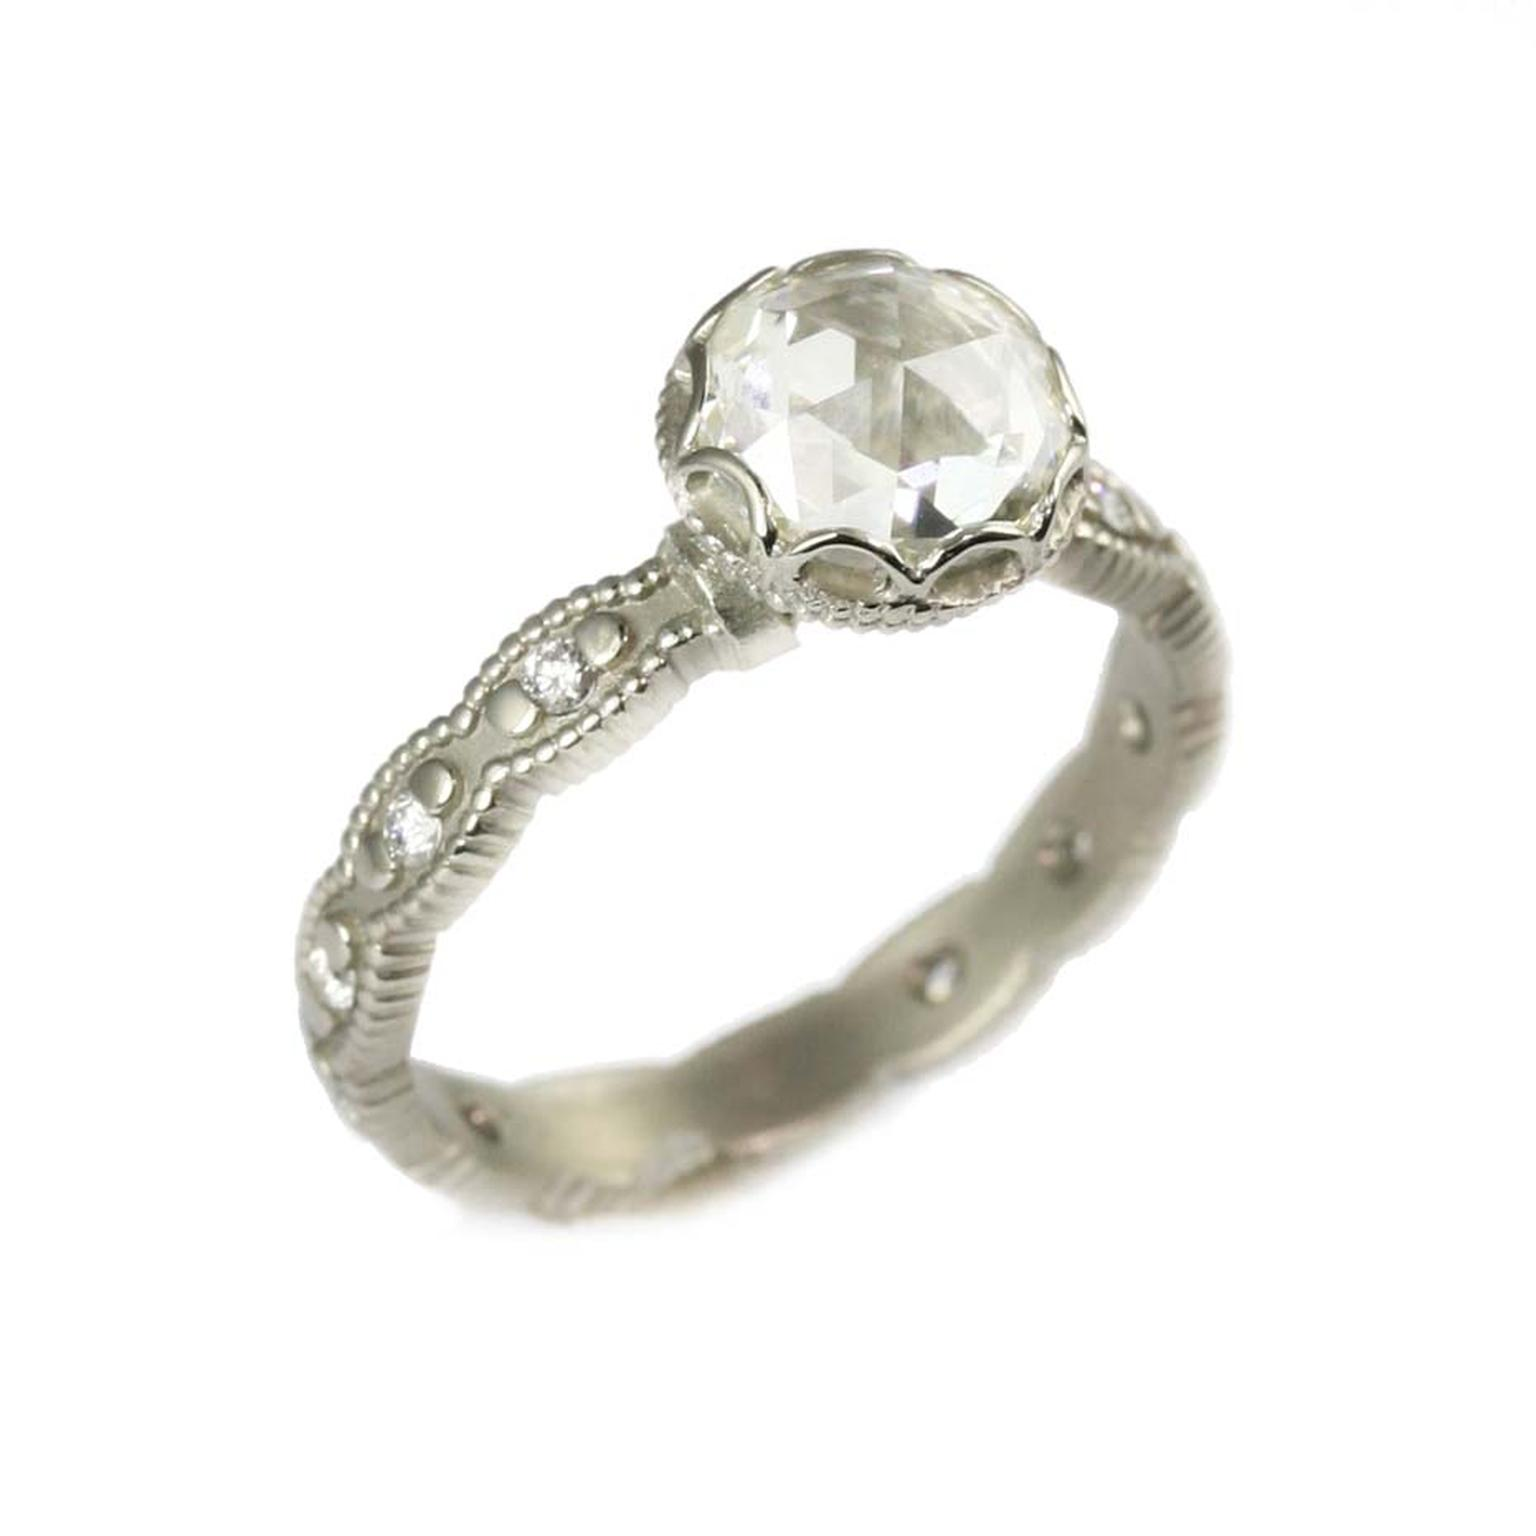 Megan Thorne engagement ring in white gold, set with a rose-cut diamond, with a scalloped bezel.